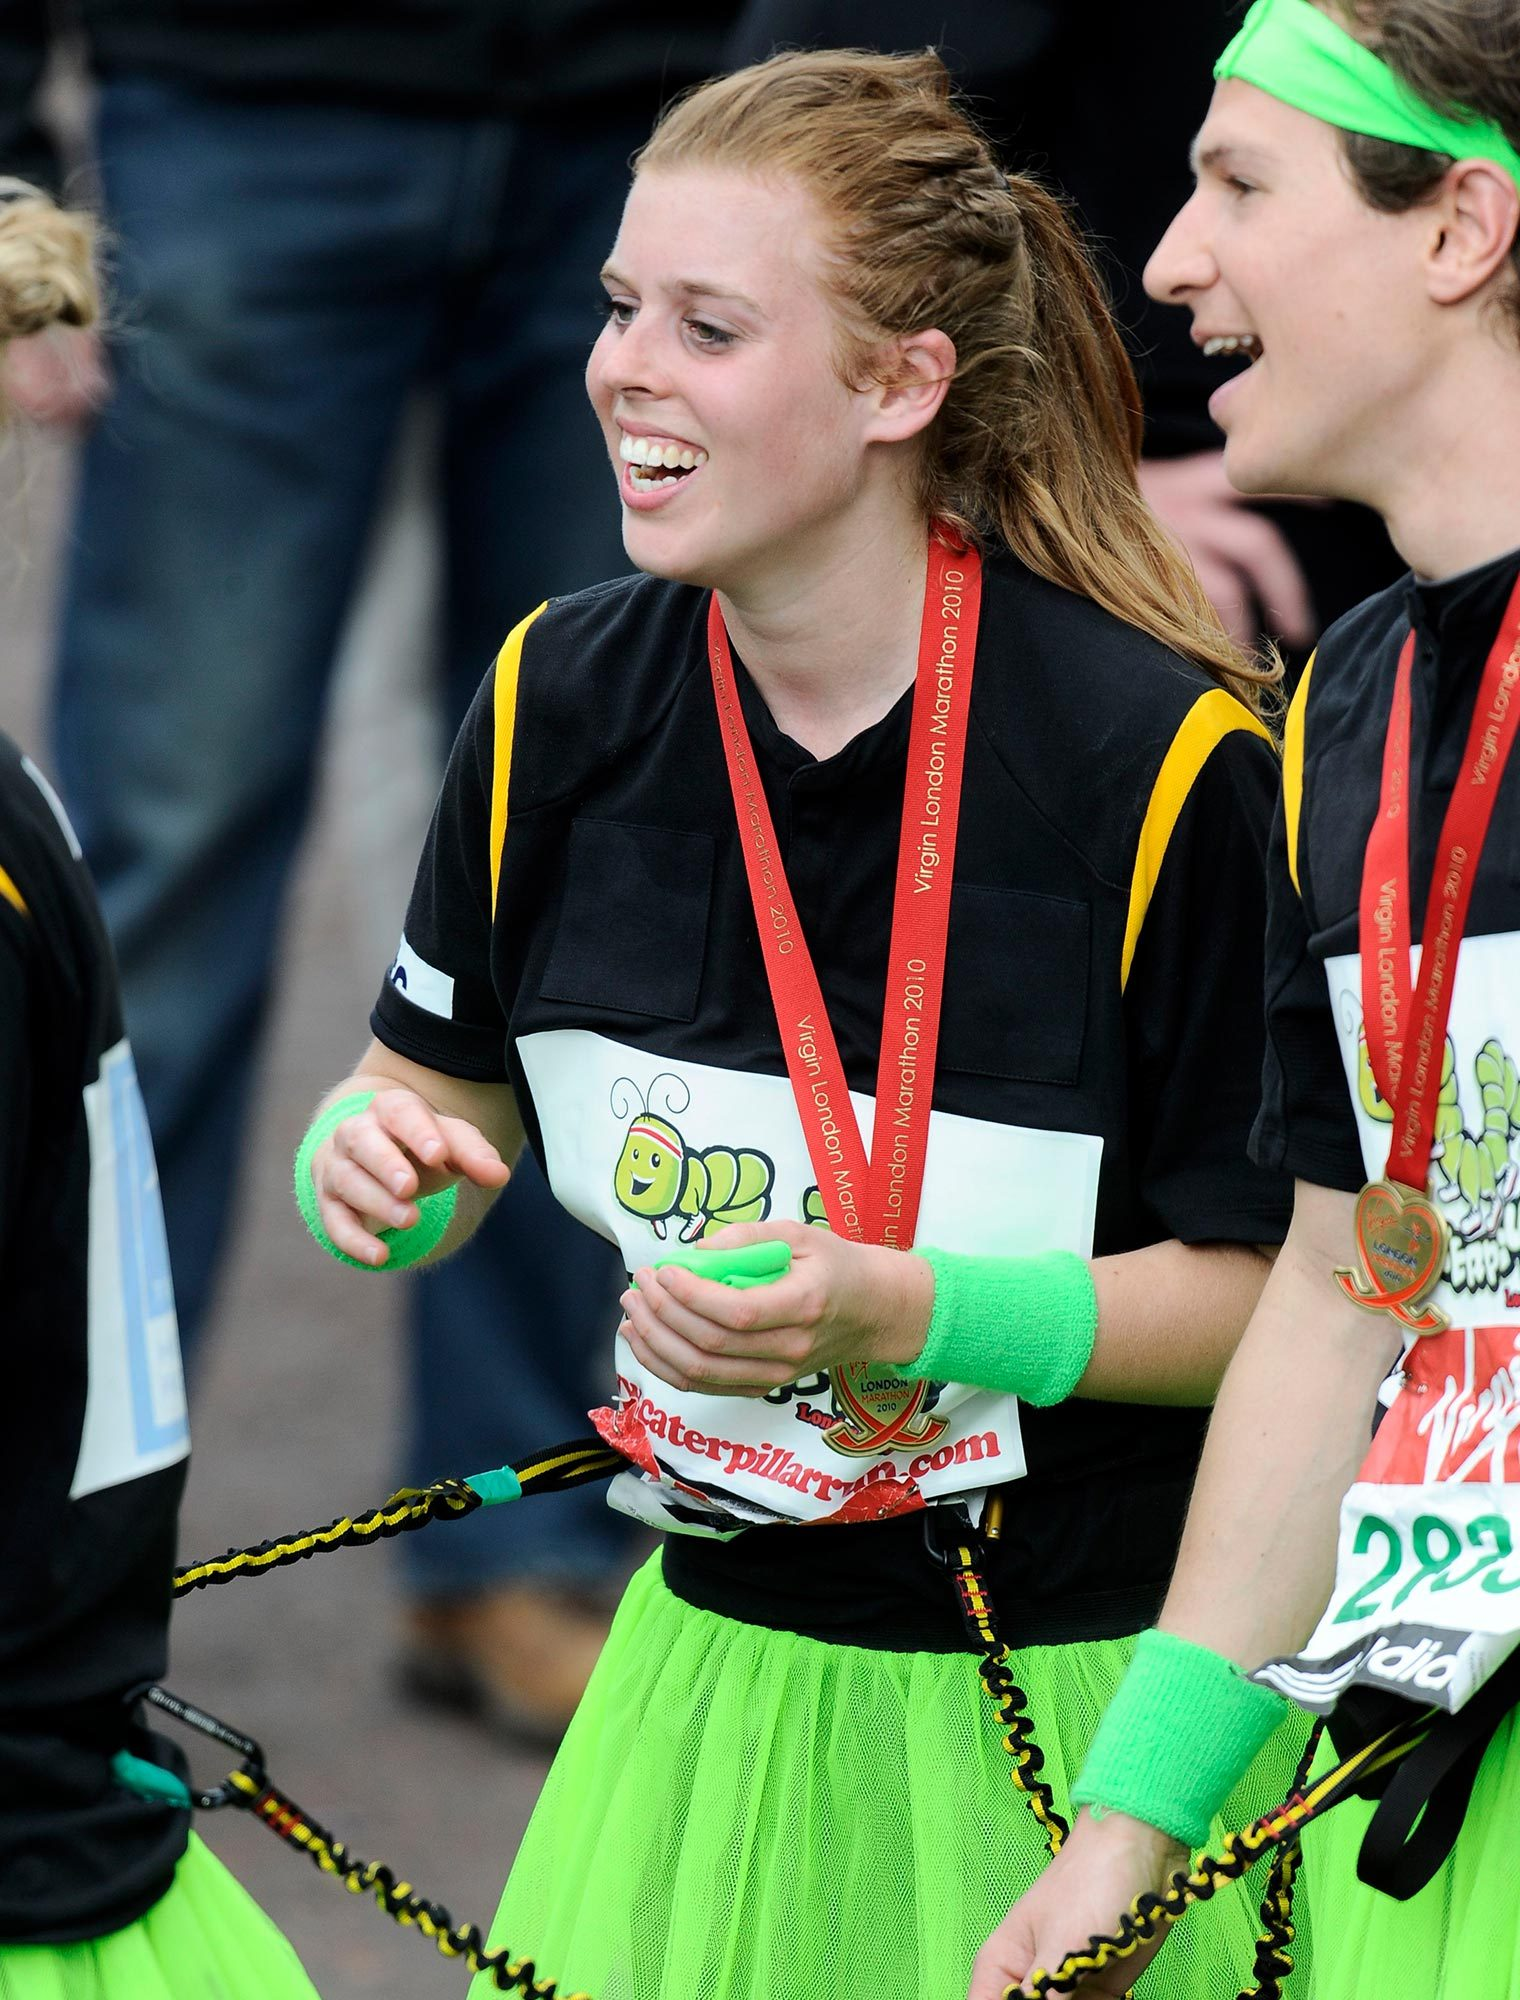 Princess Beatrice running marathon